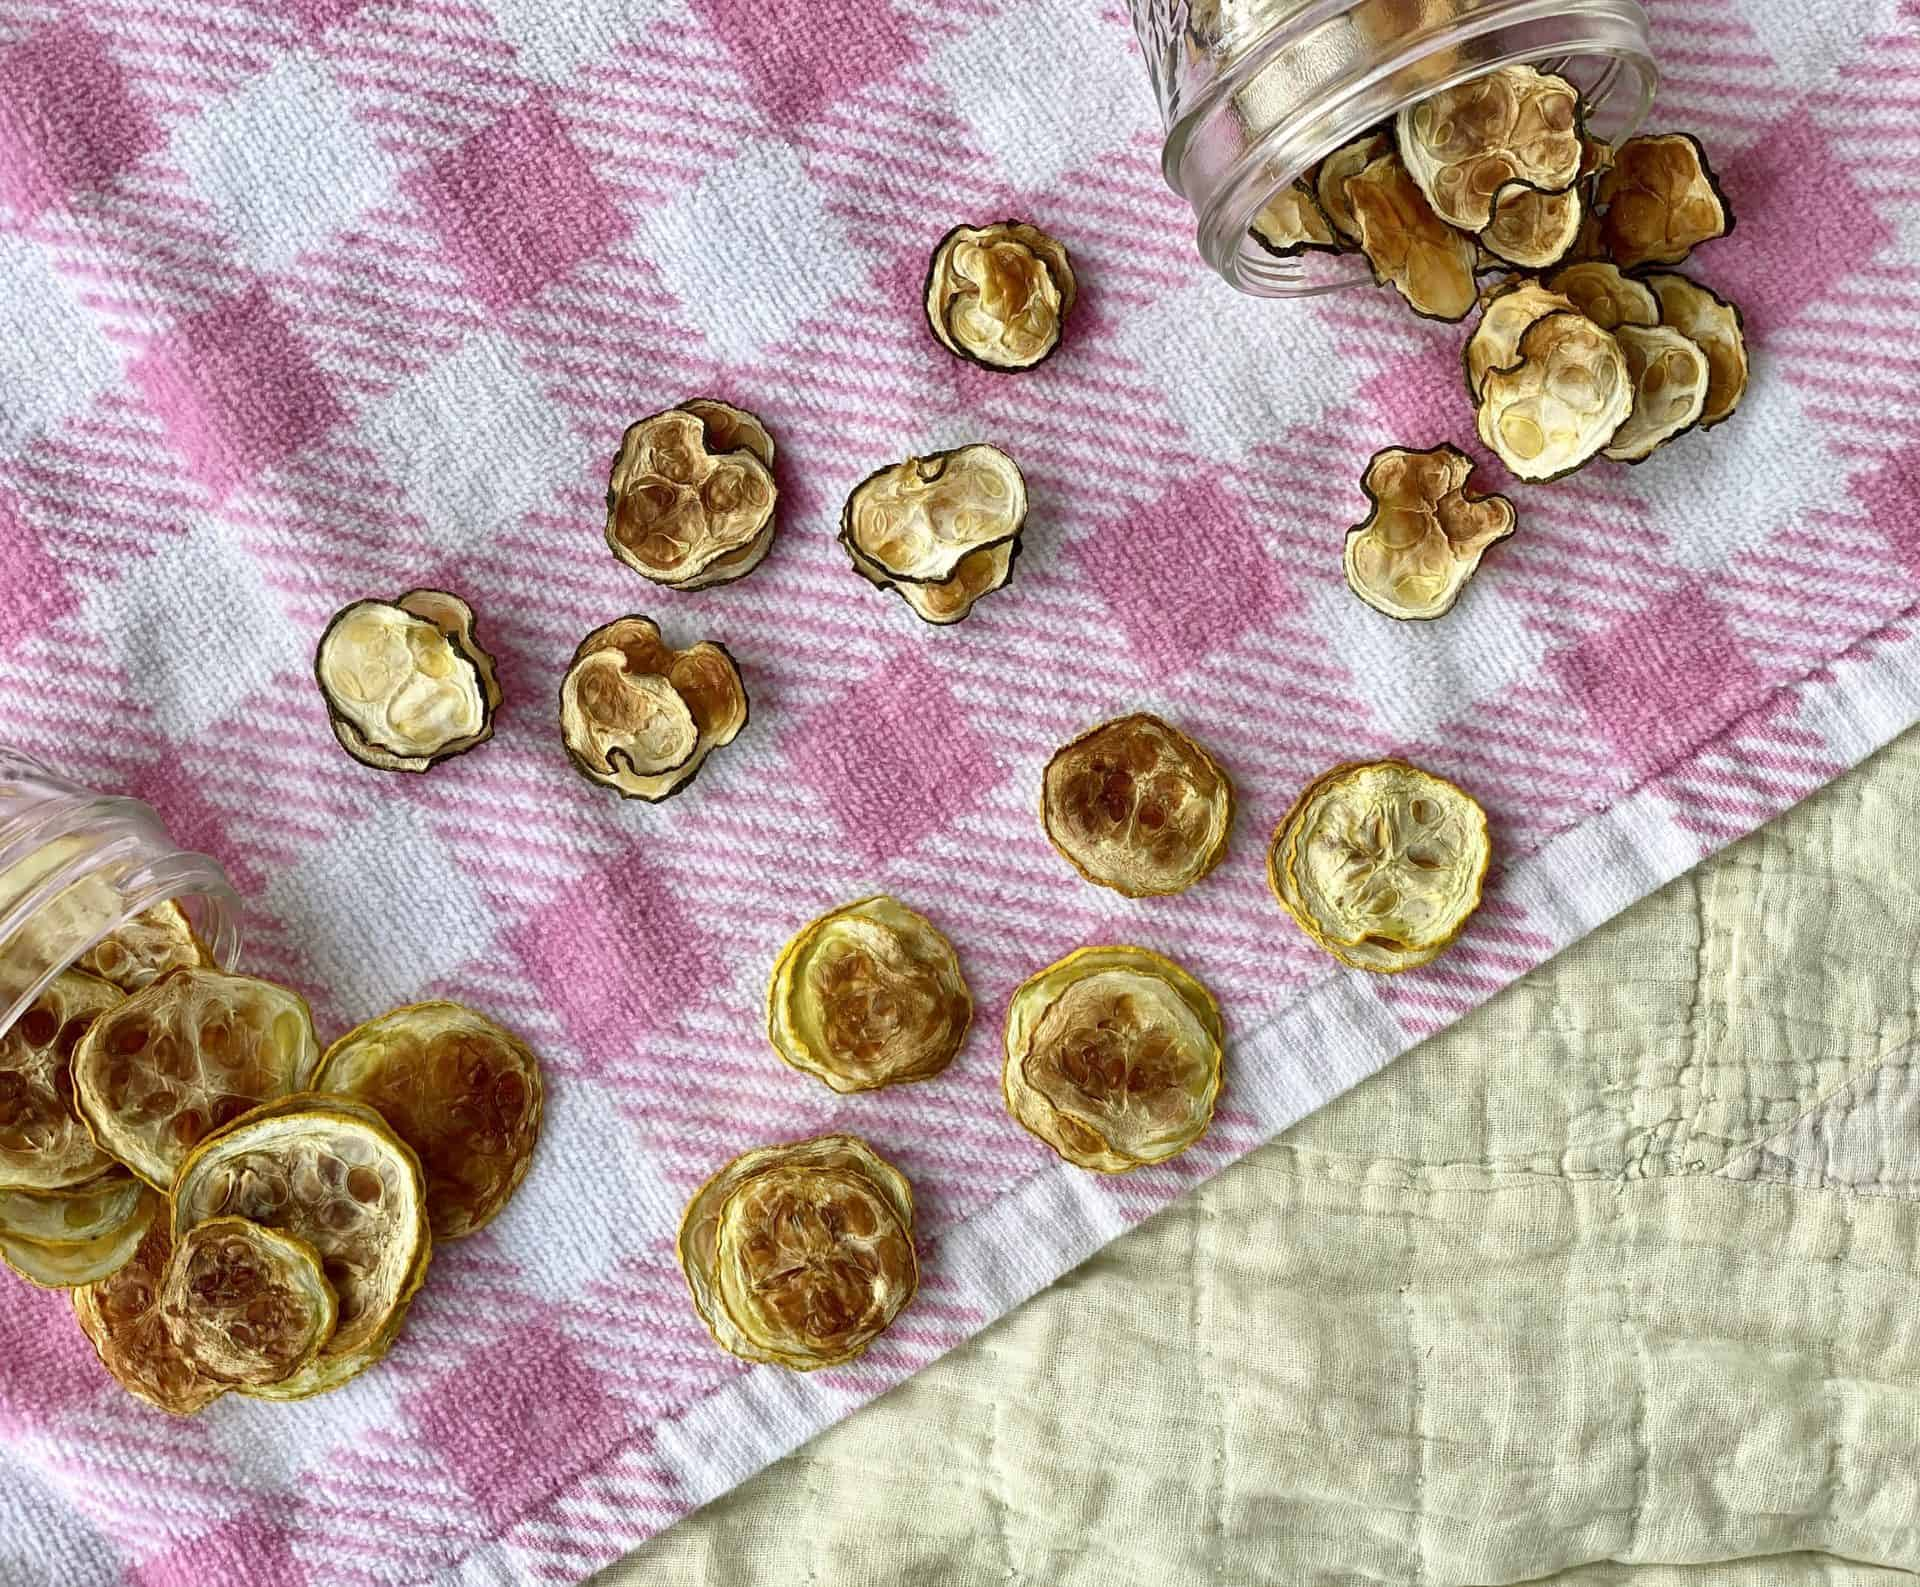 Squash-and-zucchini-chips-on-picnic-blanket